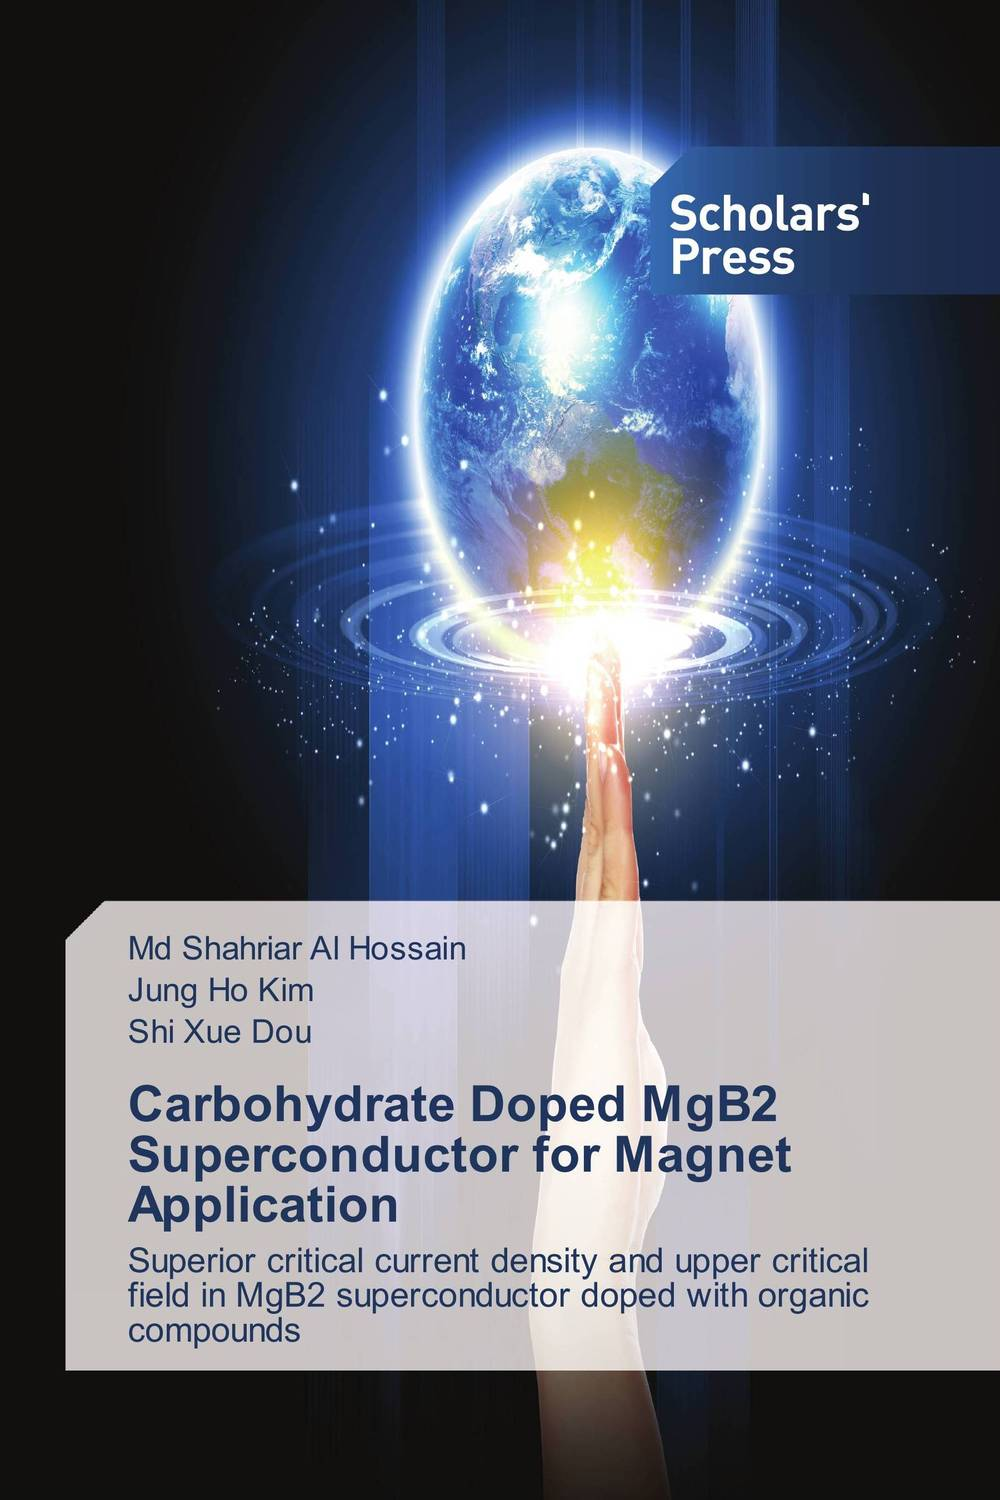 Carbohydrate Doped MgB2 Superconductor for Magnet Application carbohydrate doped mgb2 superconductor for magnet application